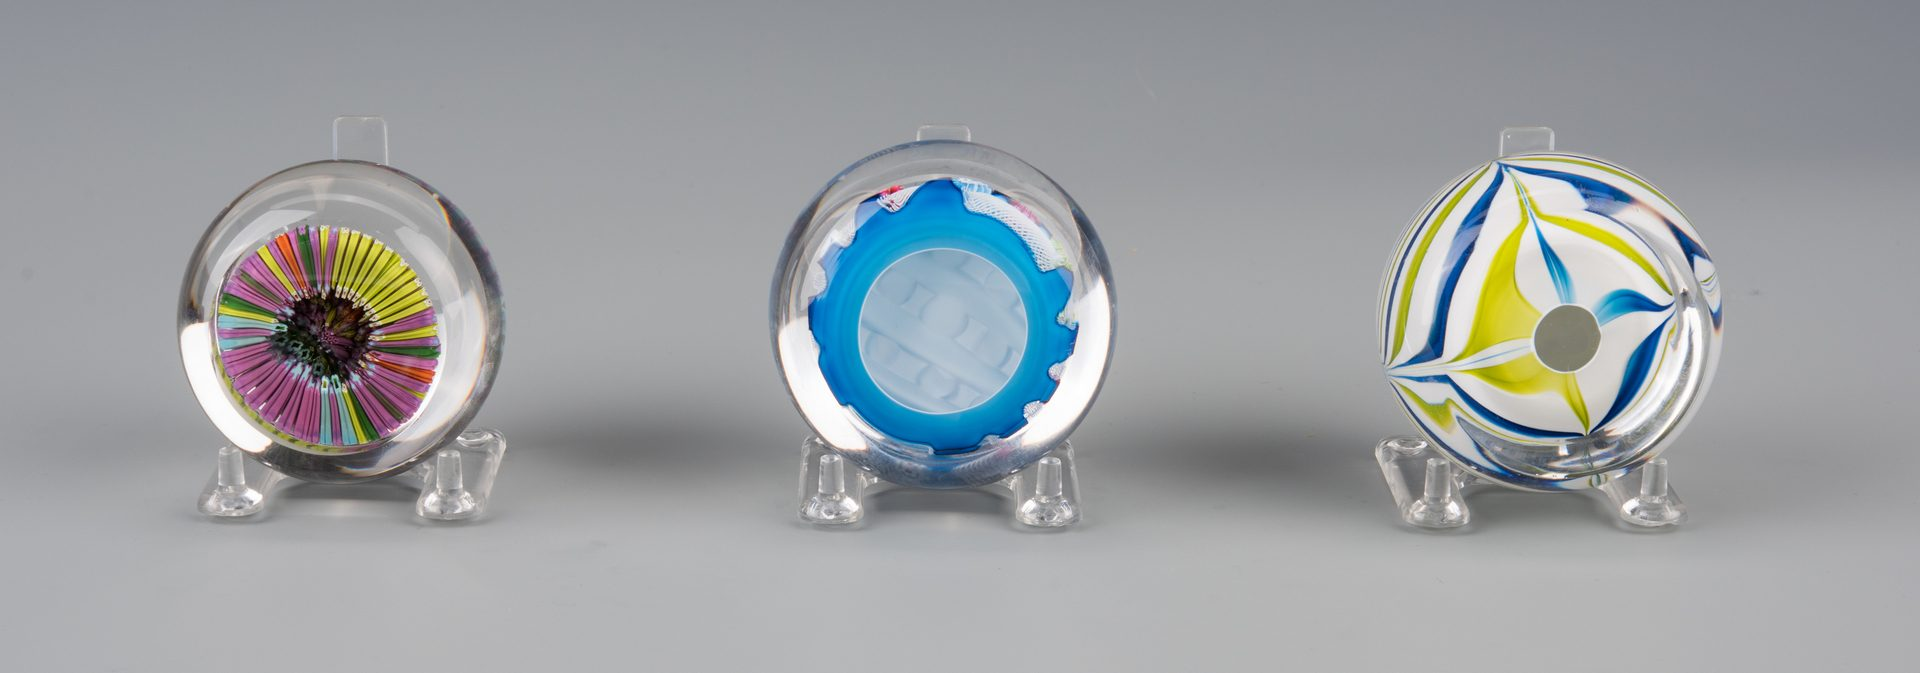 Lot 683: 9 St. Louis (France) Paperweights